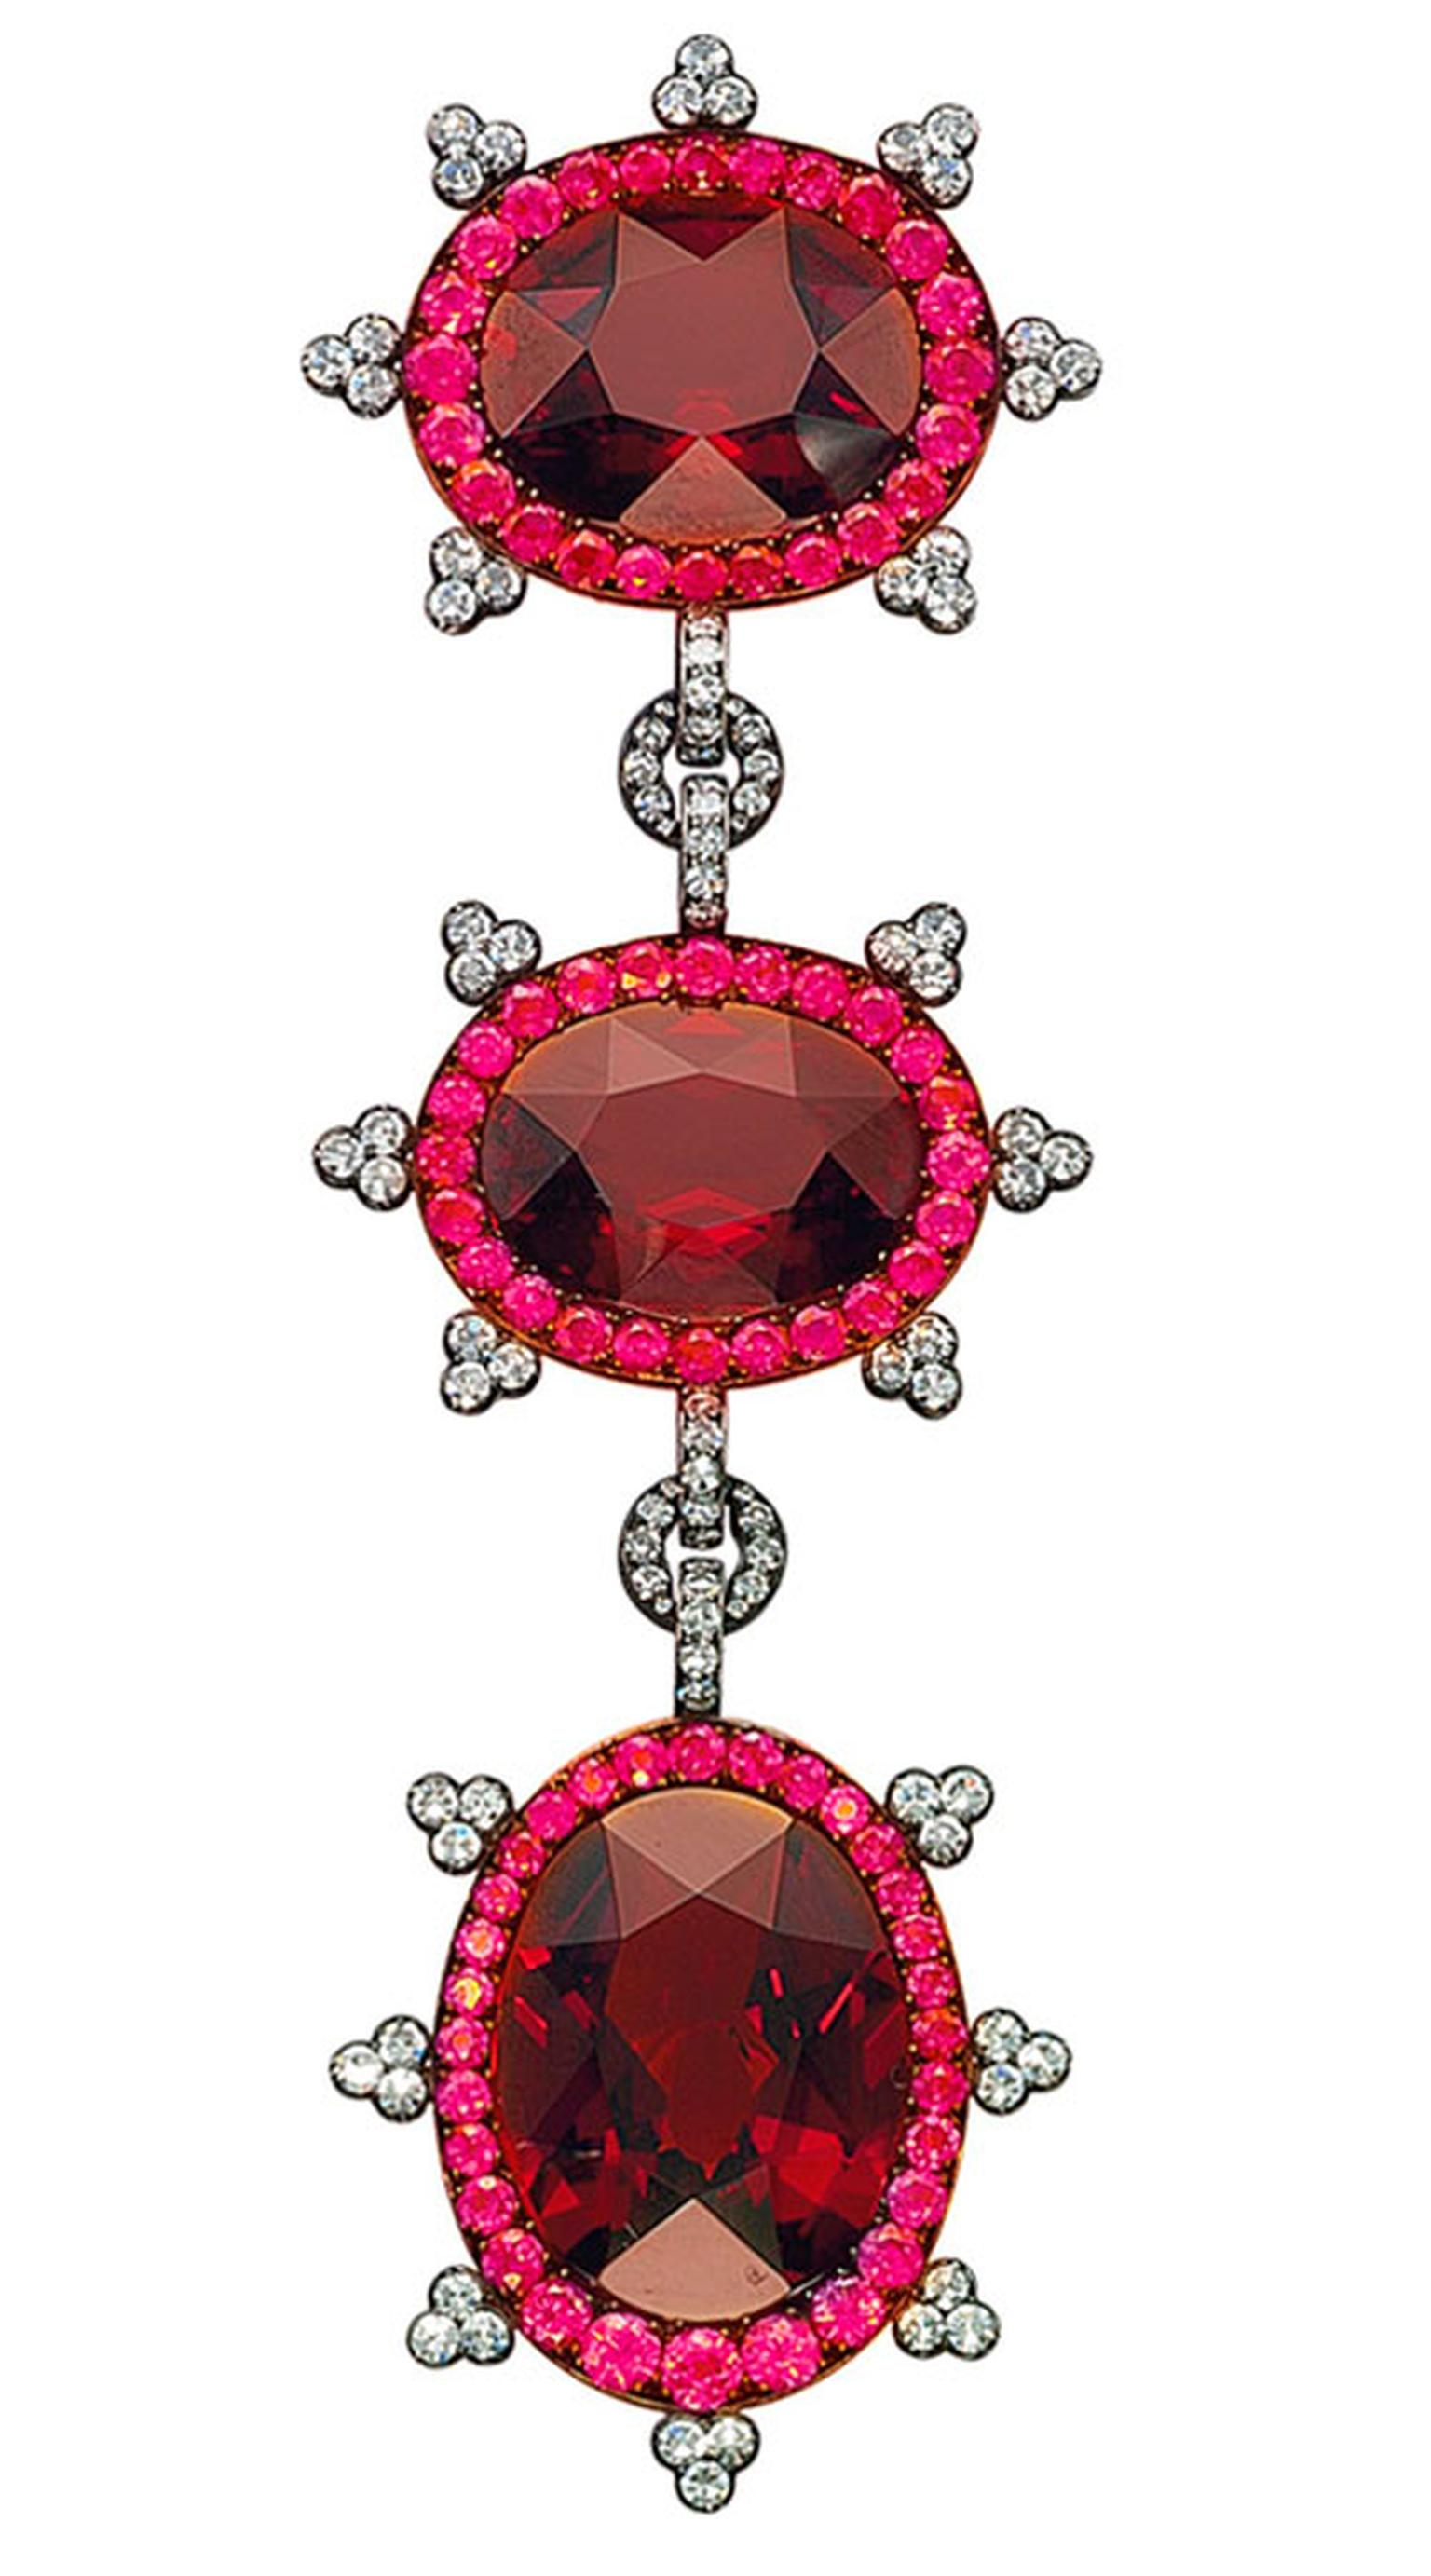 Christies Lily Safra A-garnet,-ruby-and-diamond-pendant-brooch